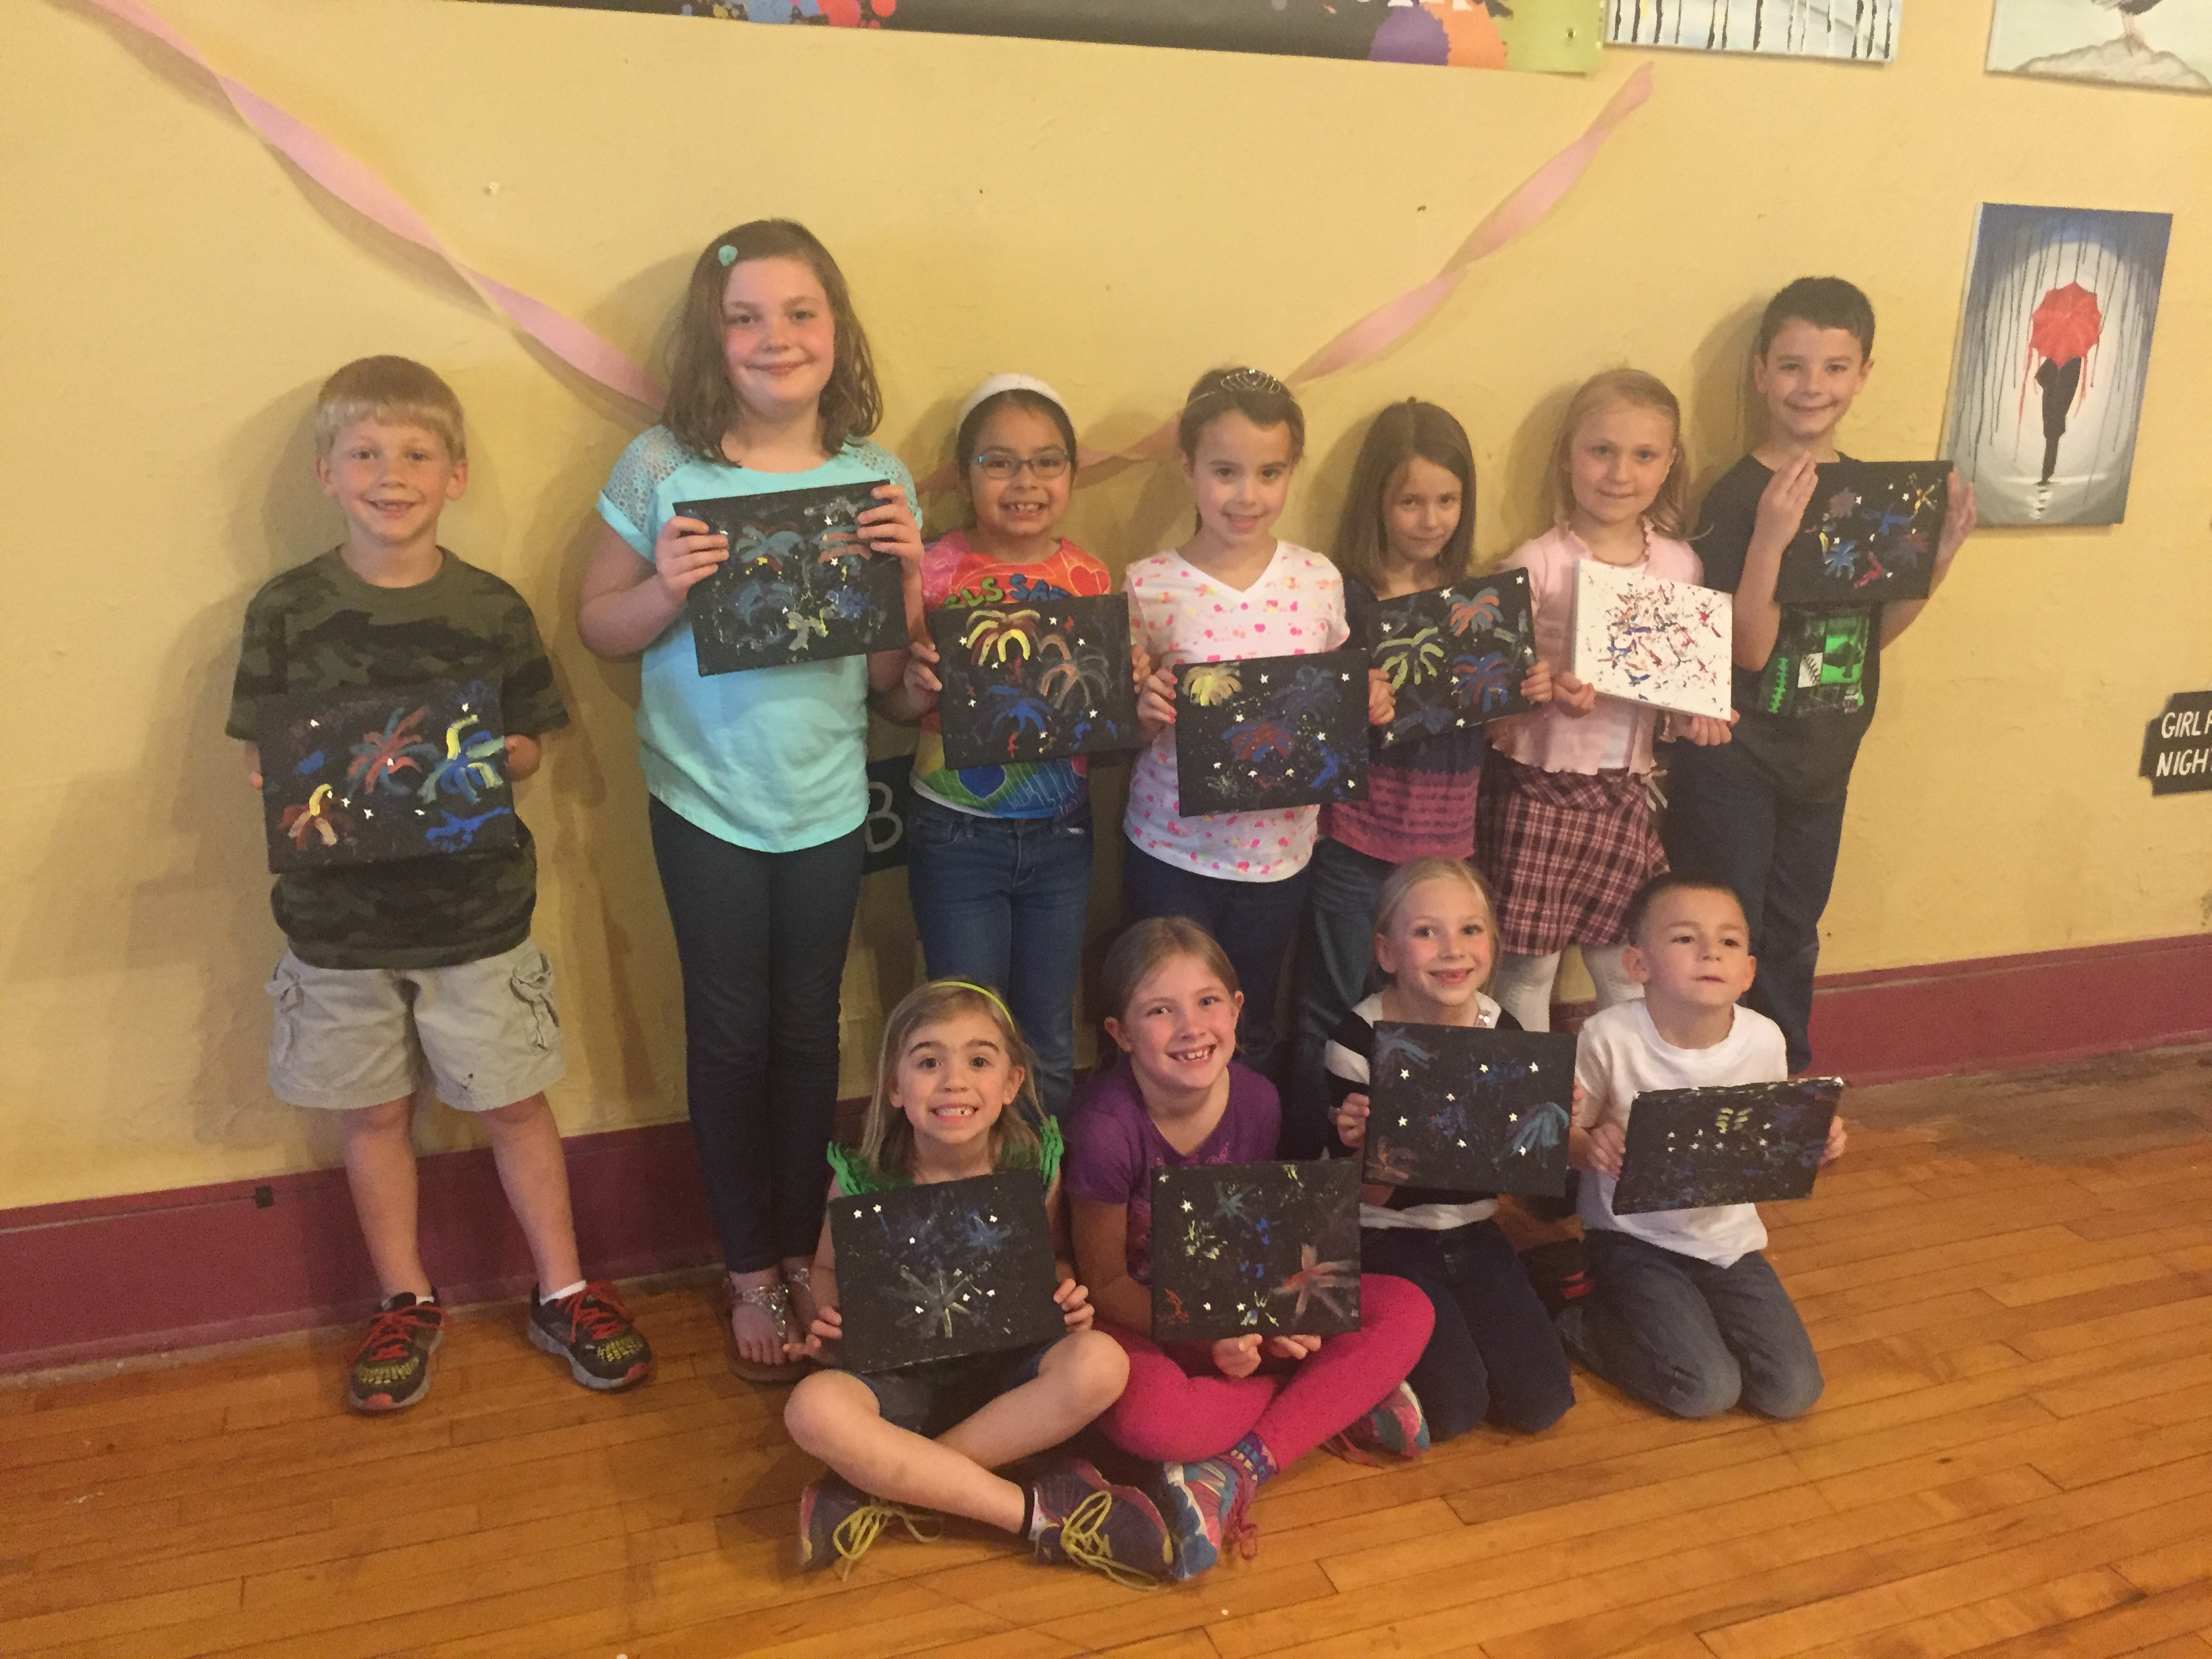 Irene chose Splatter Paint Fireworks for an Explosively fun birthday on 4/23/16!